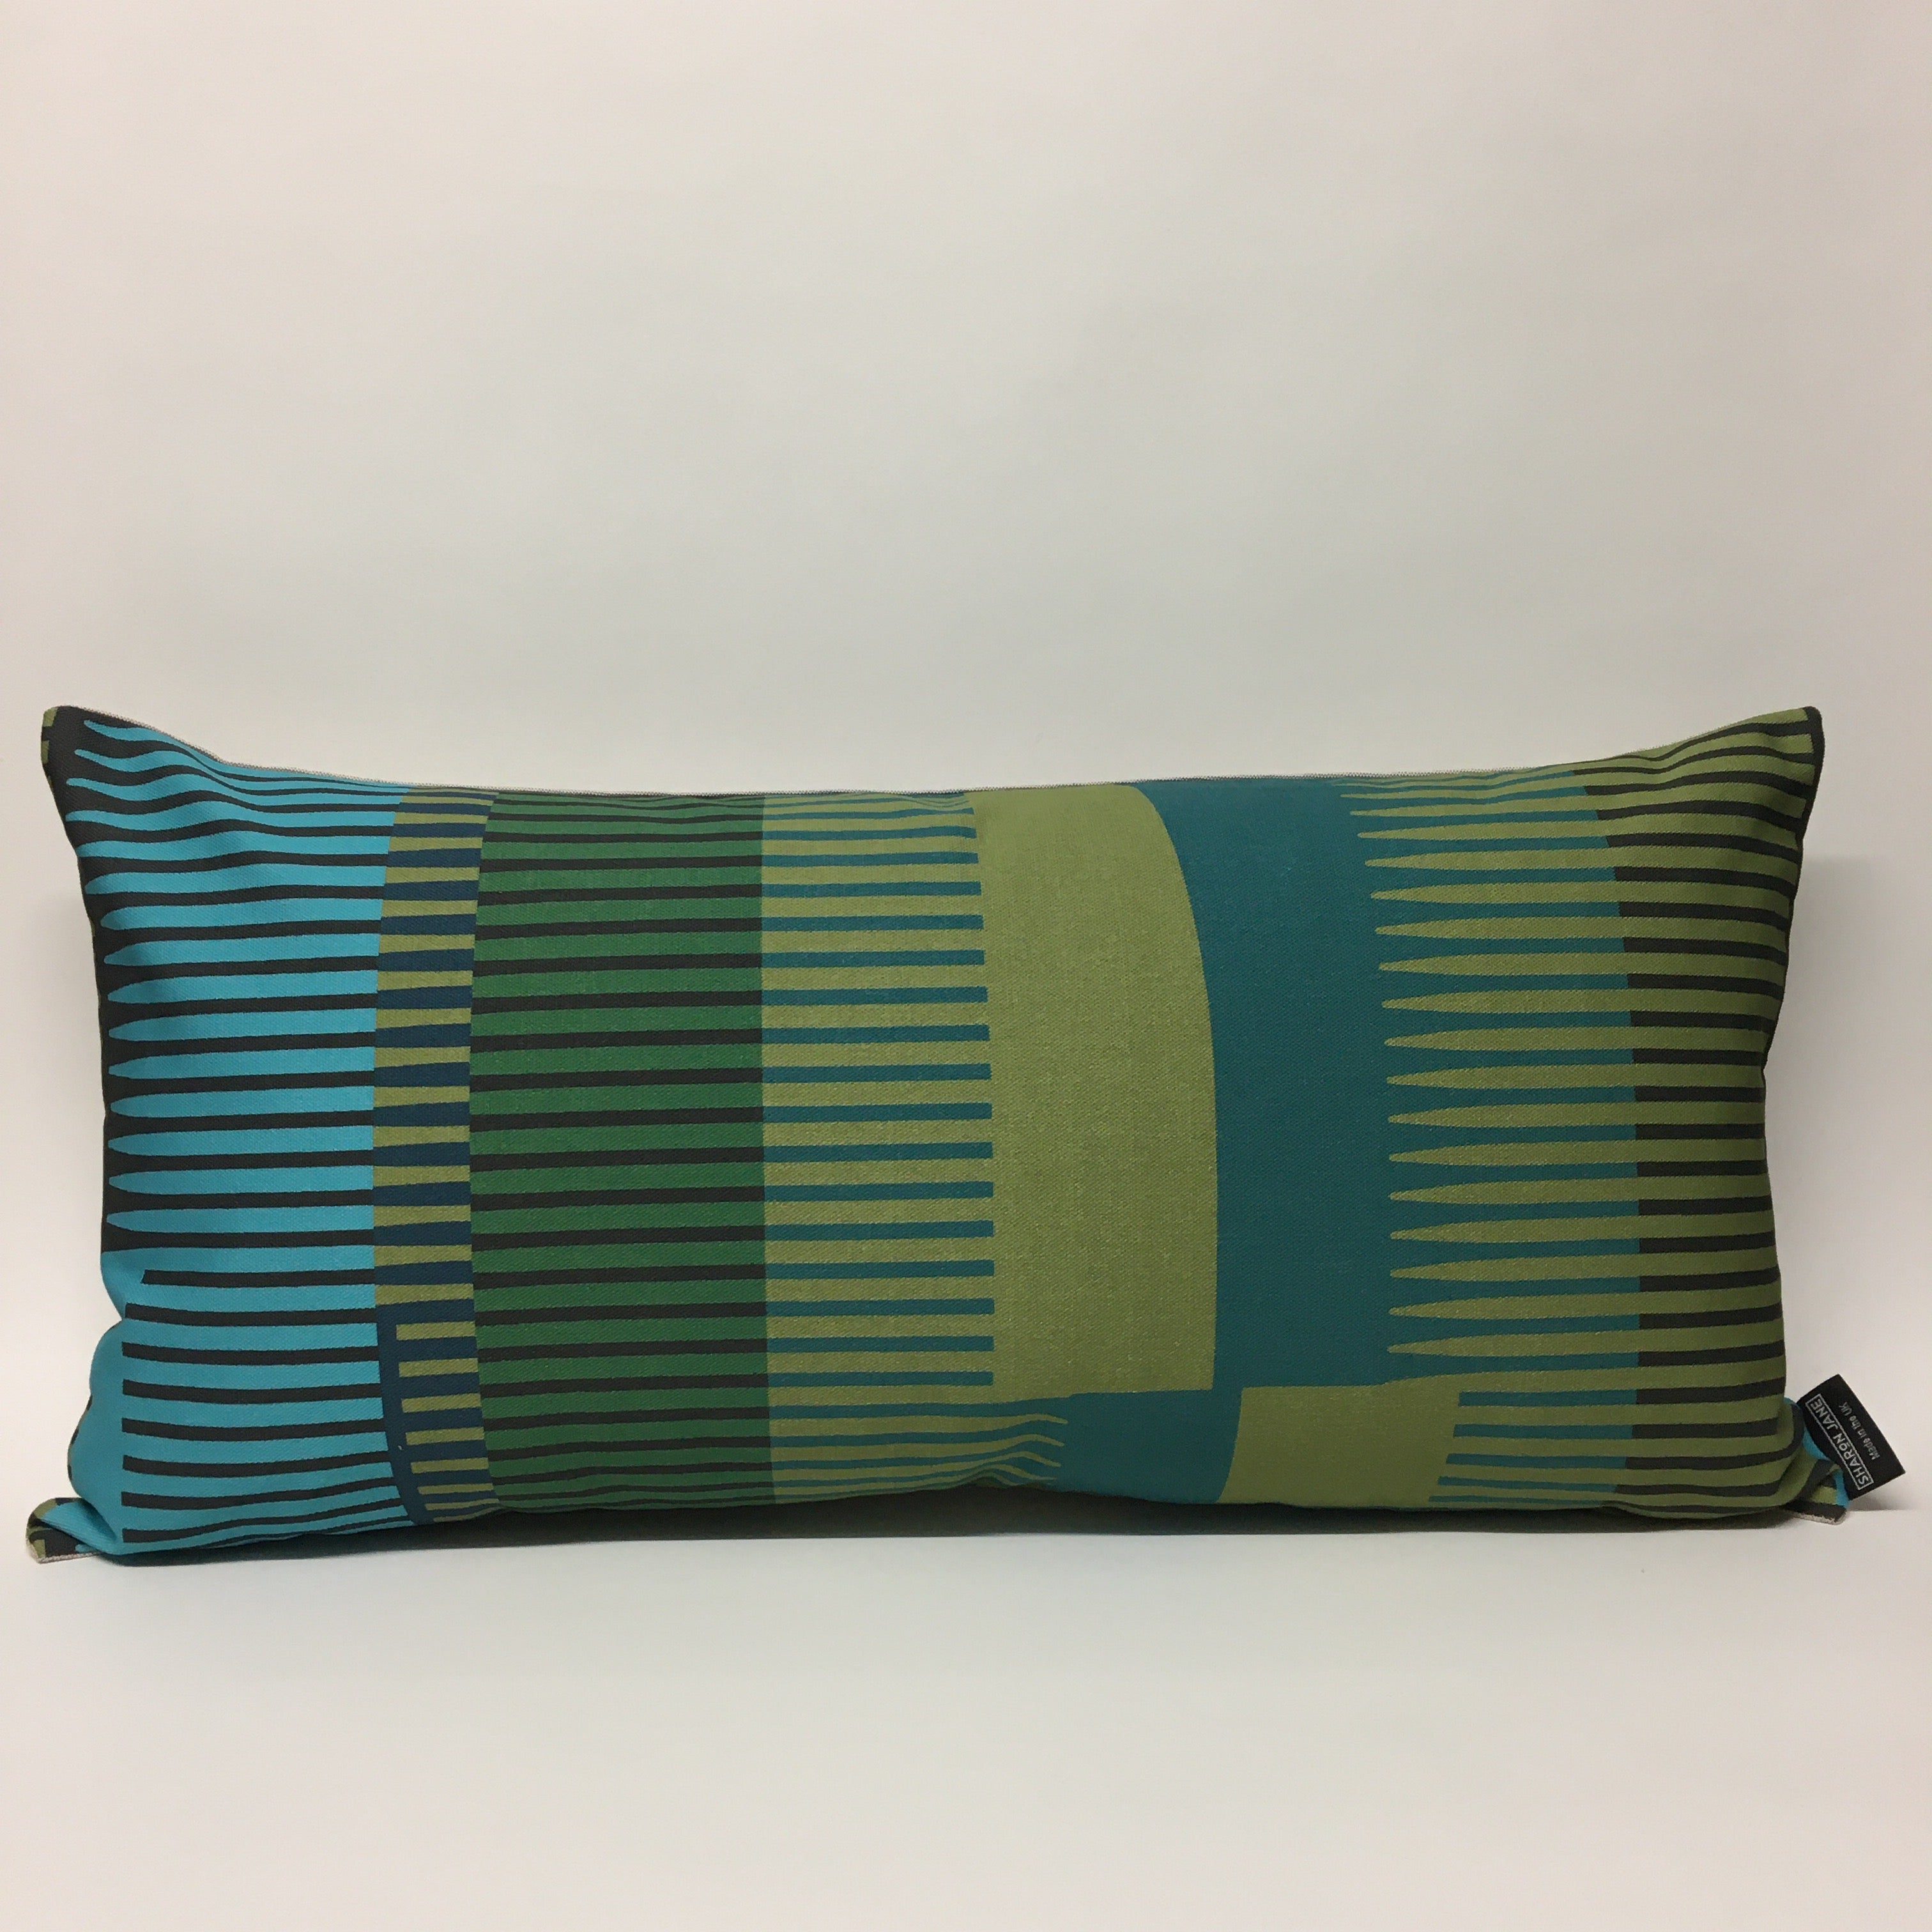 Combed Stripe Cushion - Olive, teal + turquoise